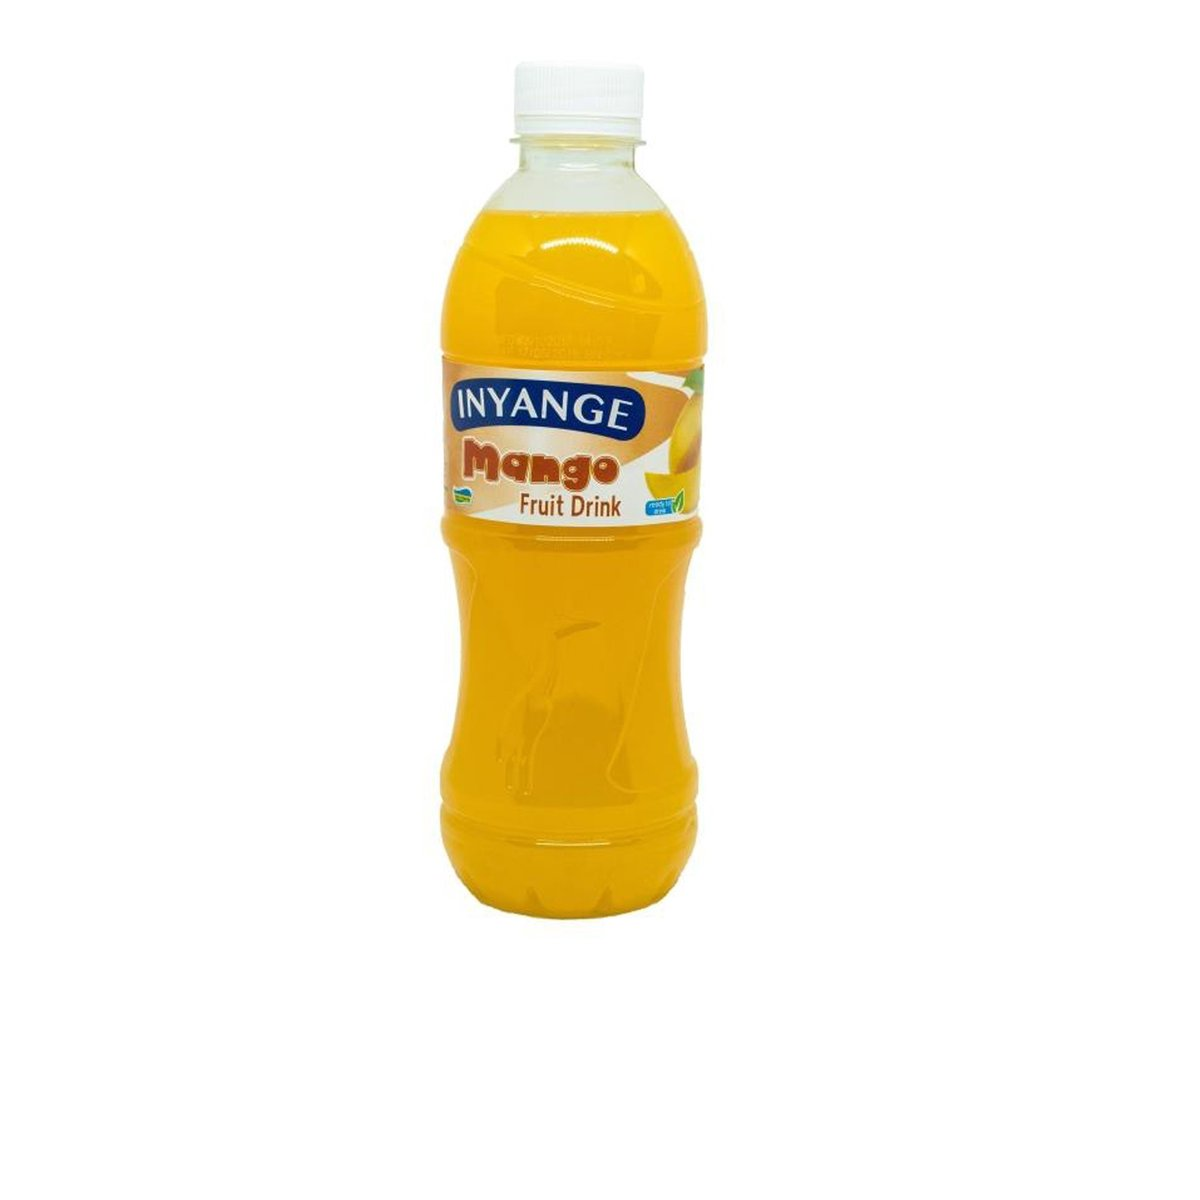 Apple, Mango 500 ml Price: 900 Rwf Delivery Fees: 1000 Rwf